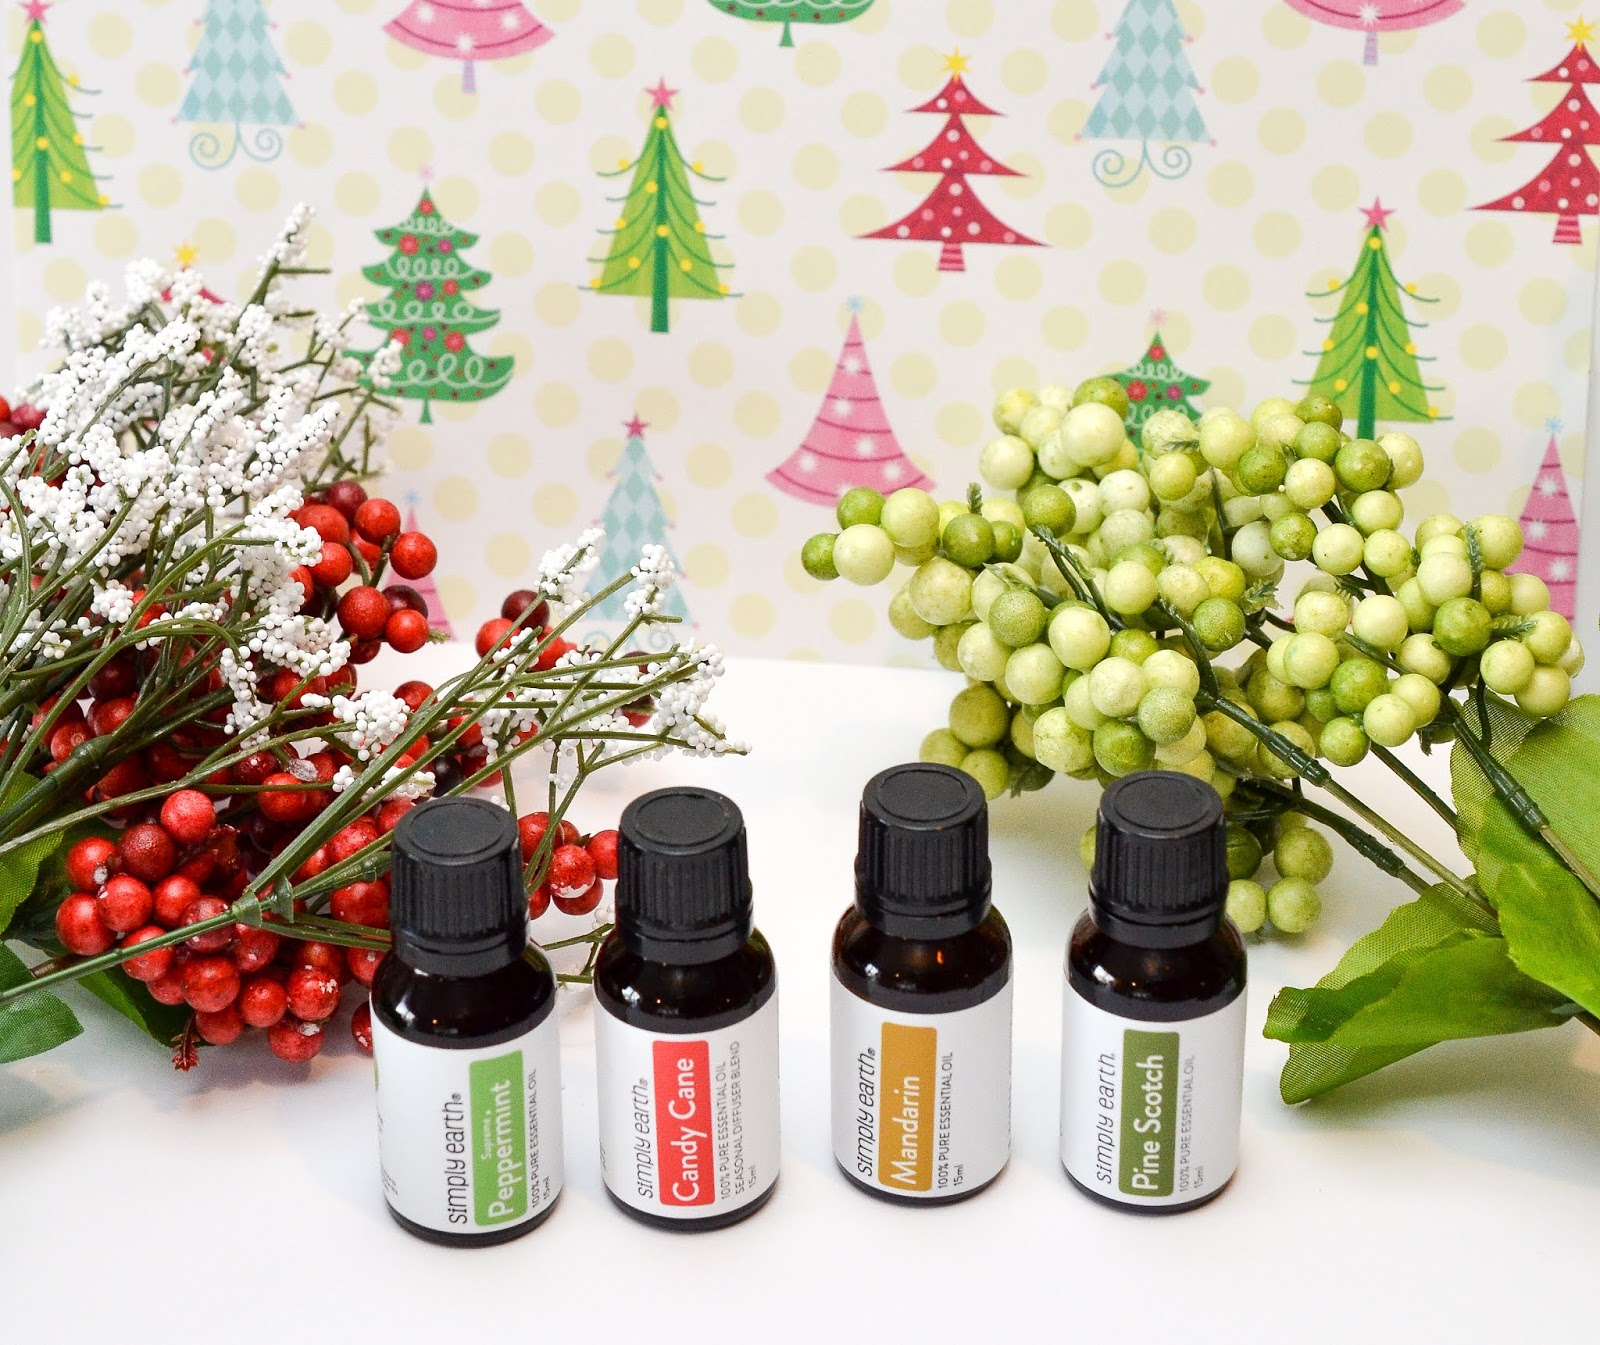 DIY Gifts with the Simply Earth December Essential Oil Box